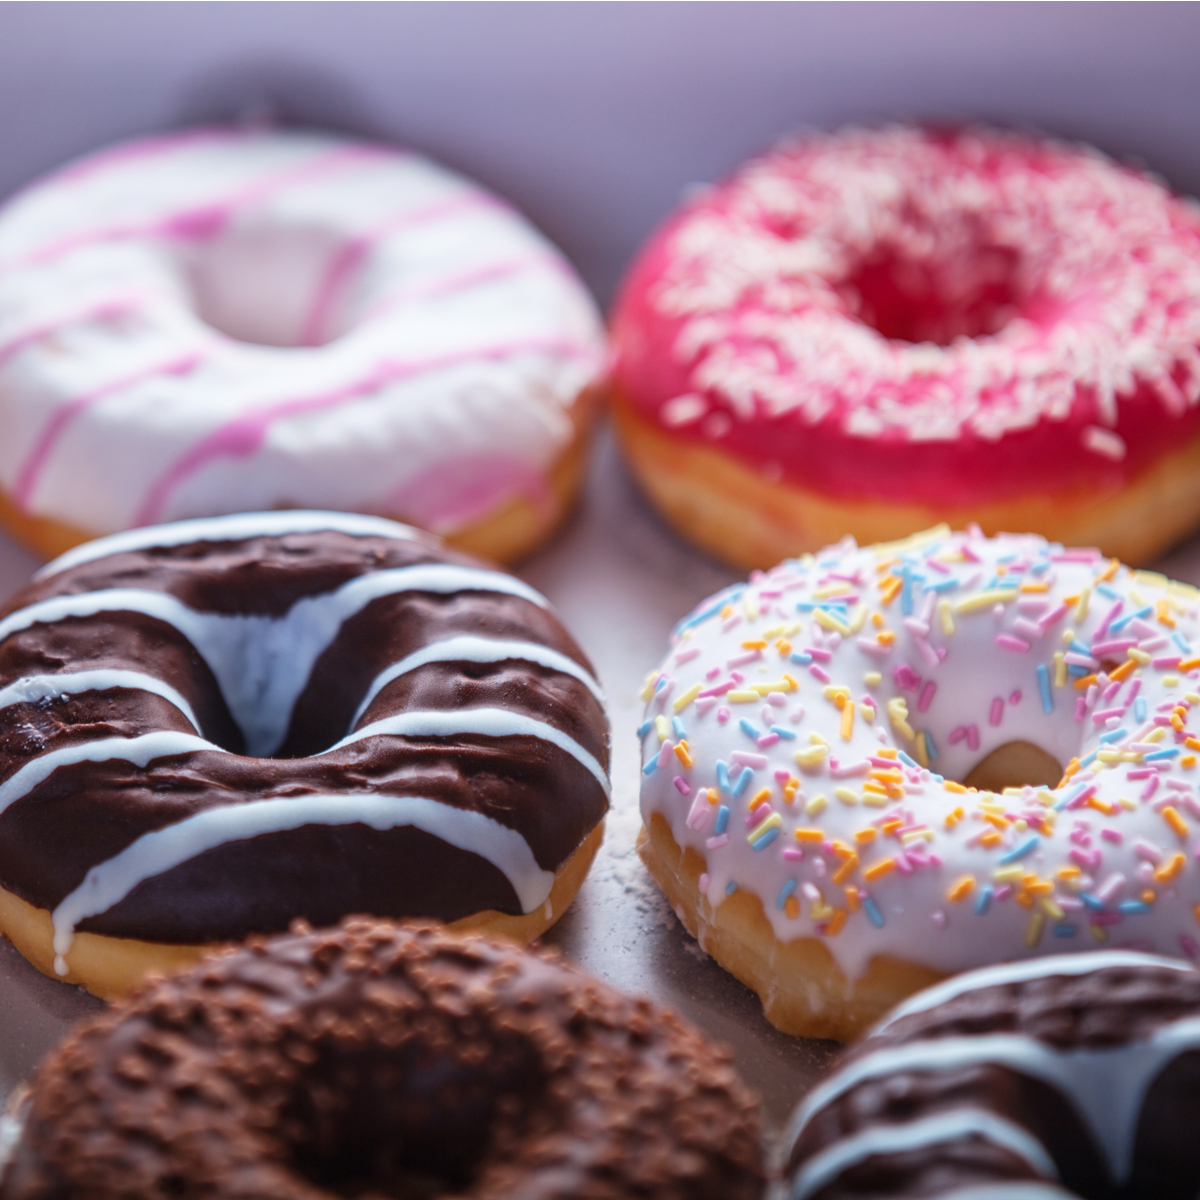 Press Release: Lawsuit Filed Against Donut Shop For Discriminating Against Pregnant Employee